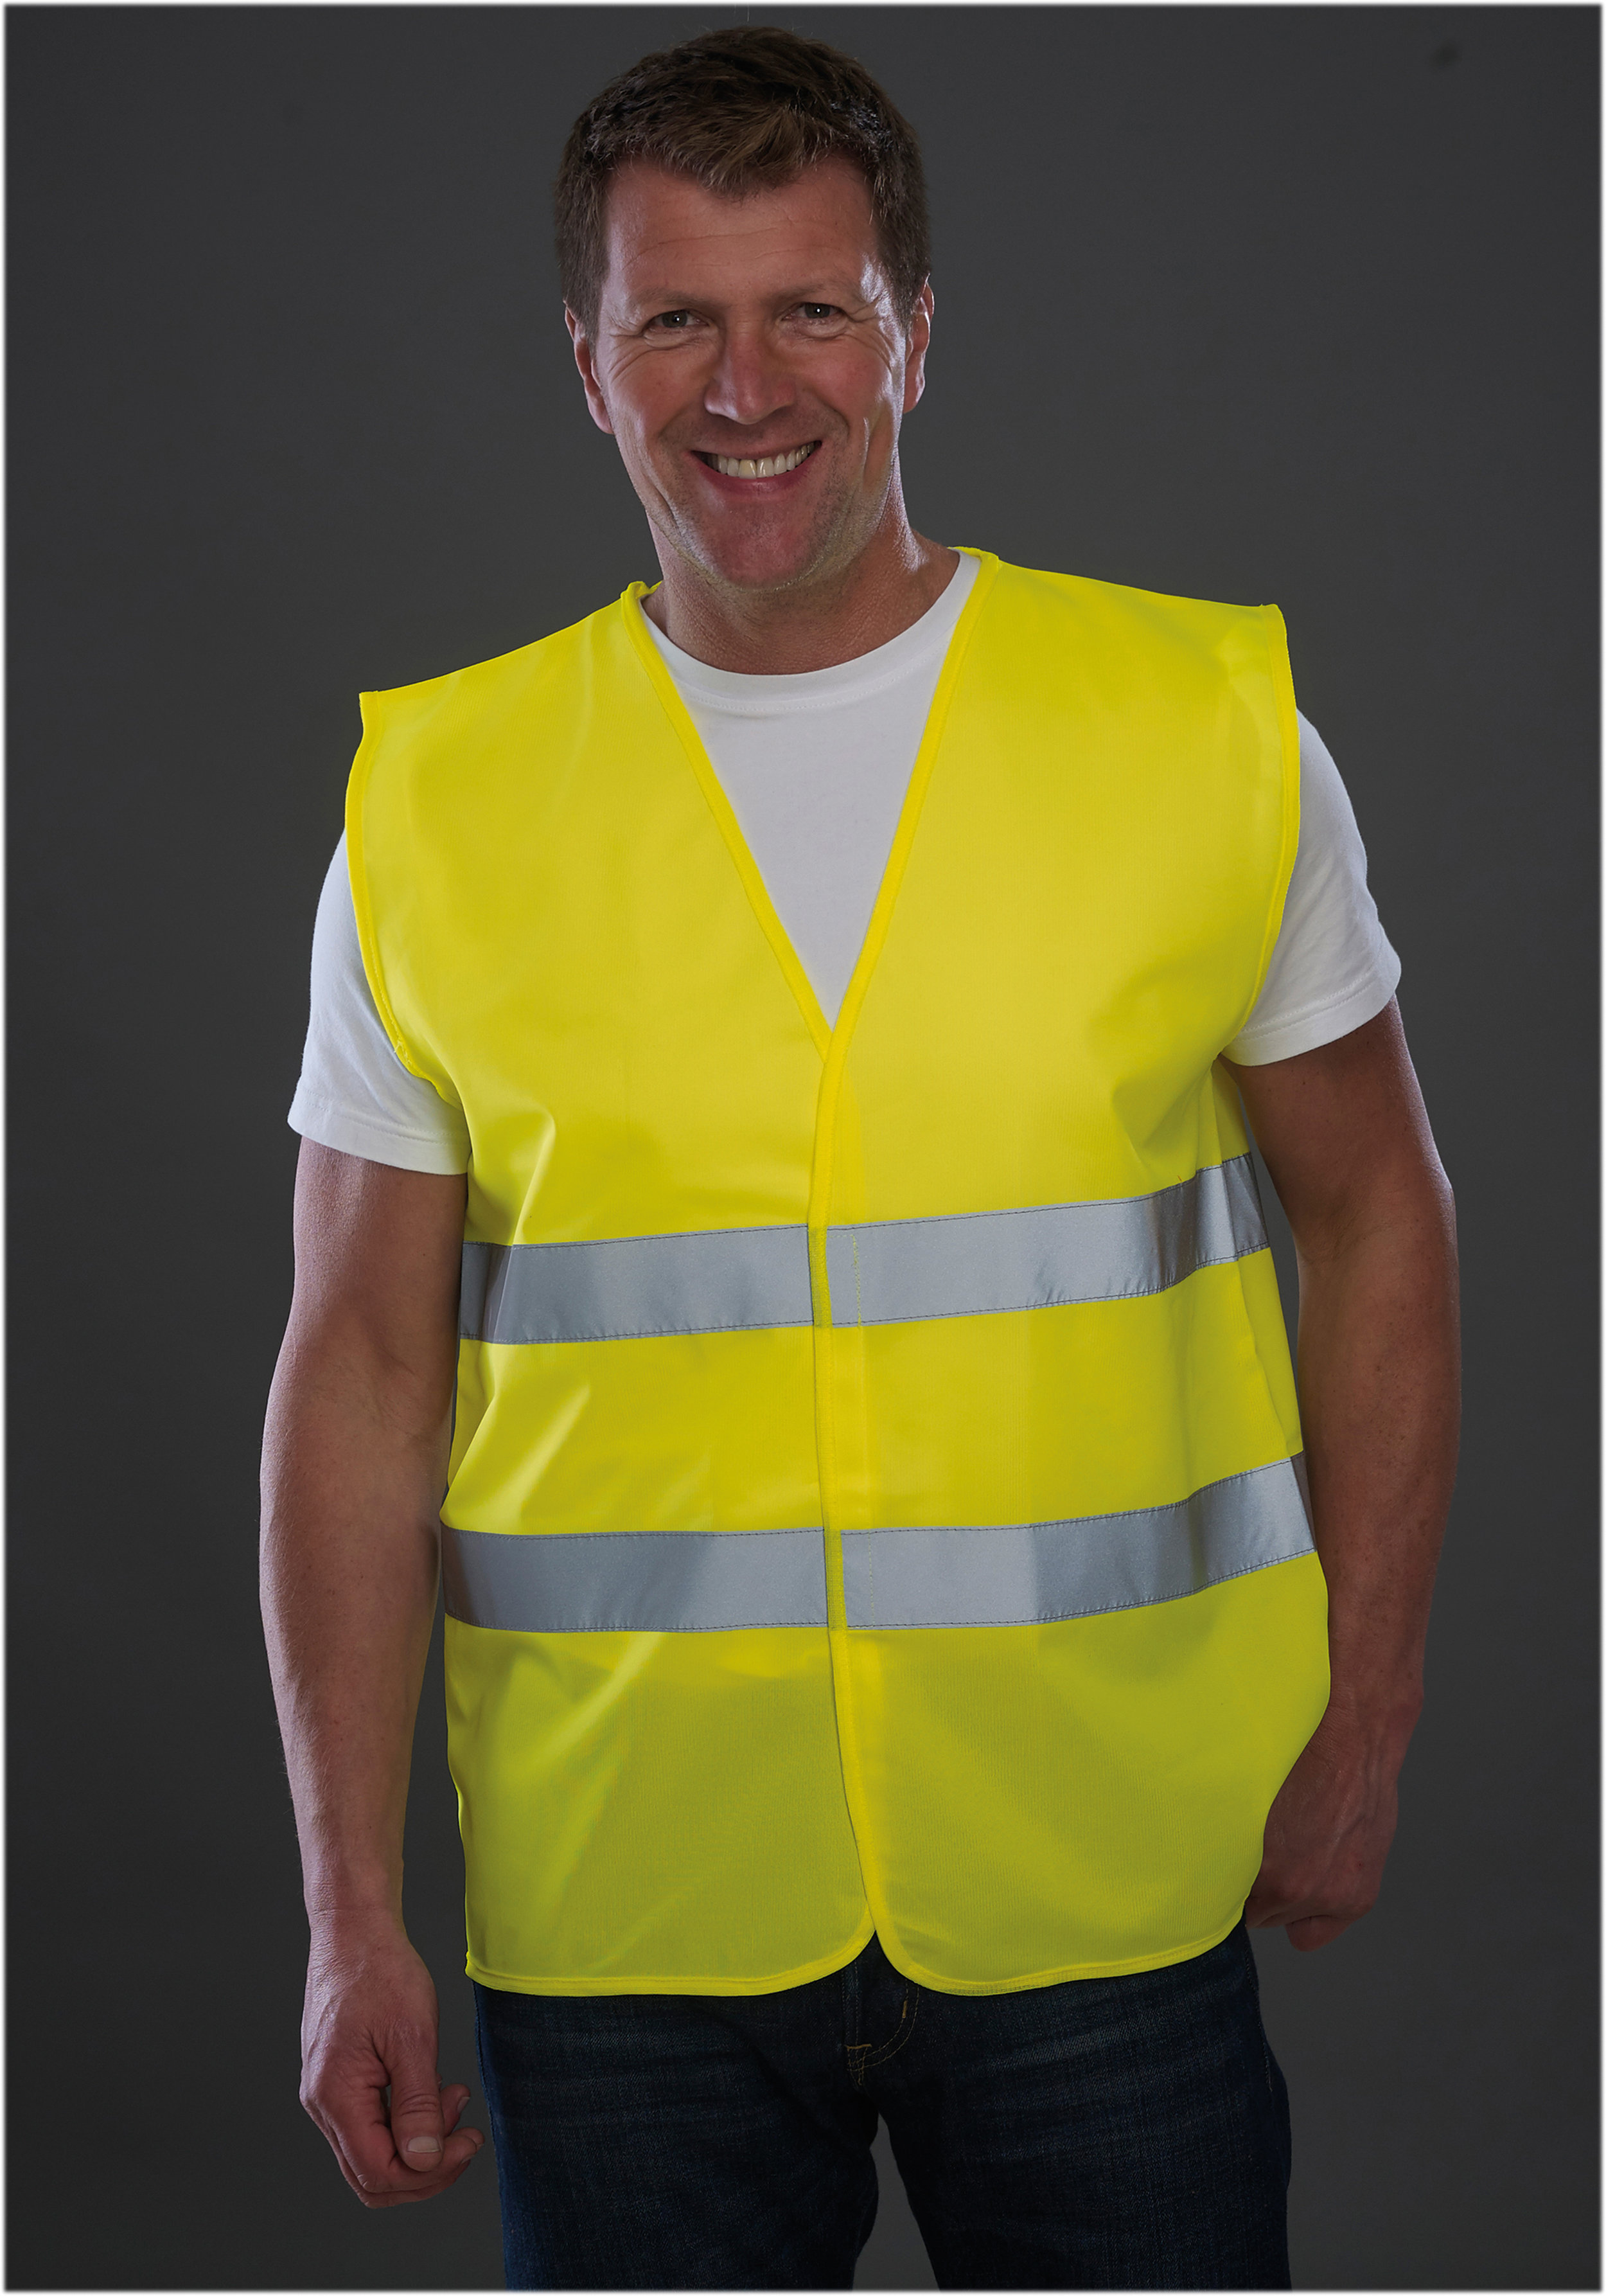 Work wear - All your work wear printing needs met with Urban Identity